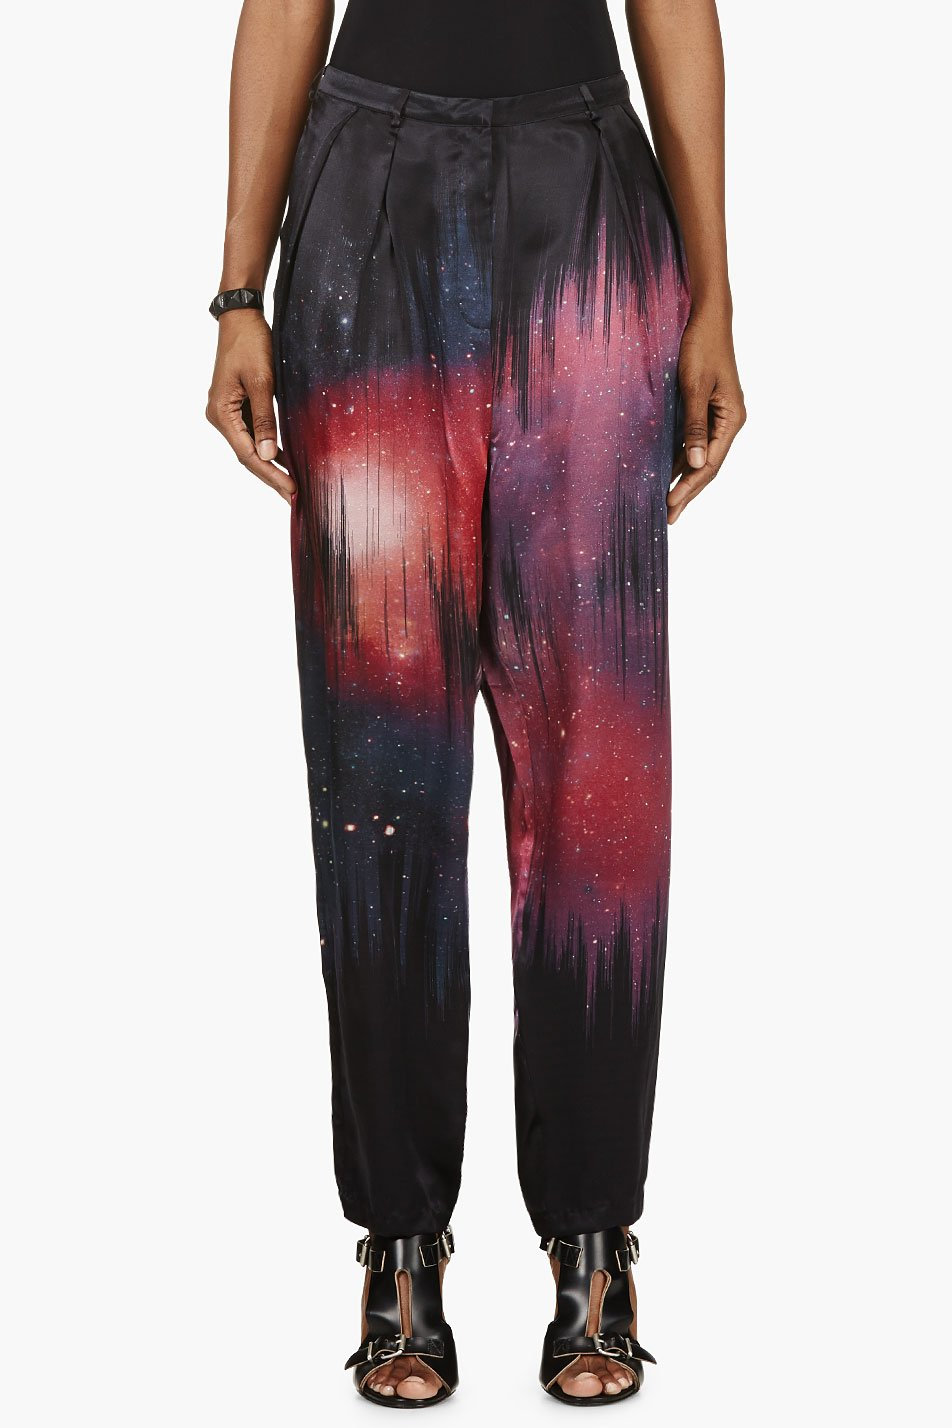 Avelon black and pink silk cosmic tousled pants